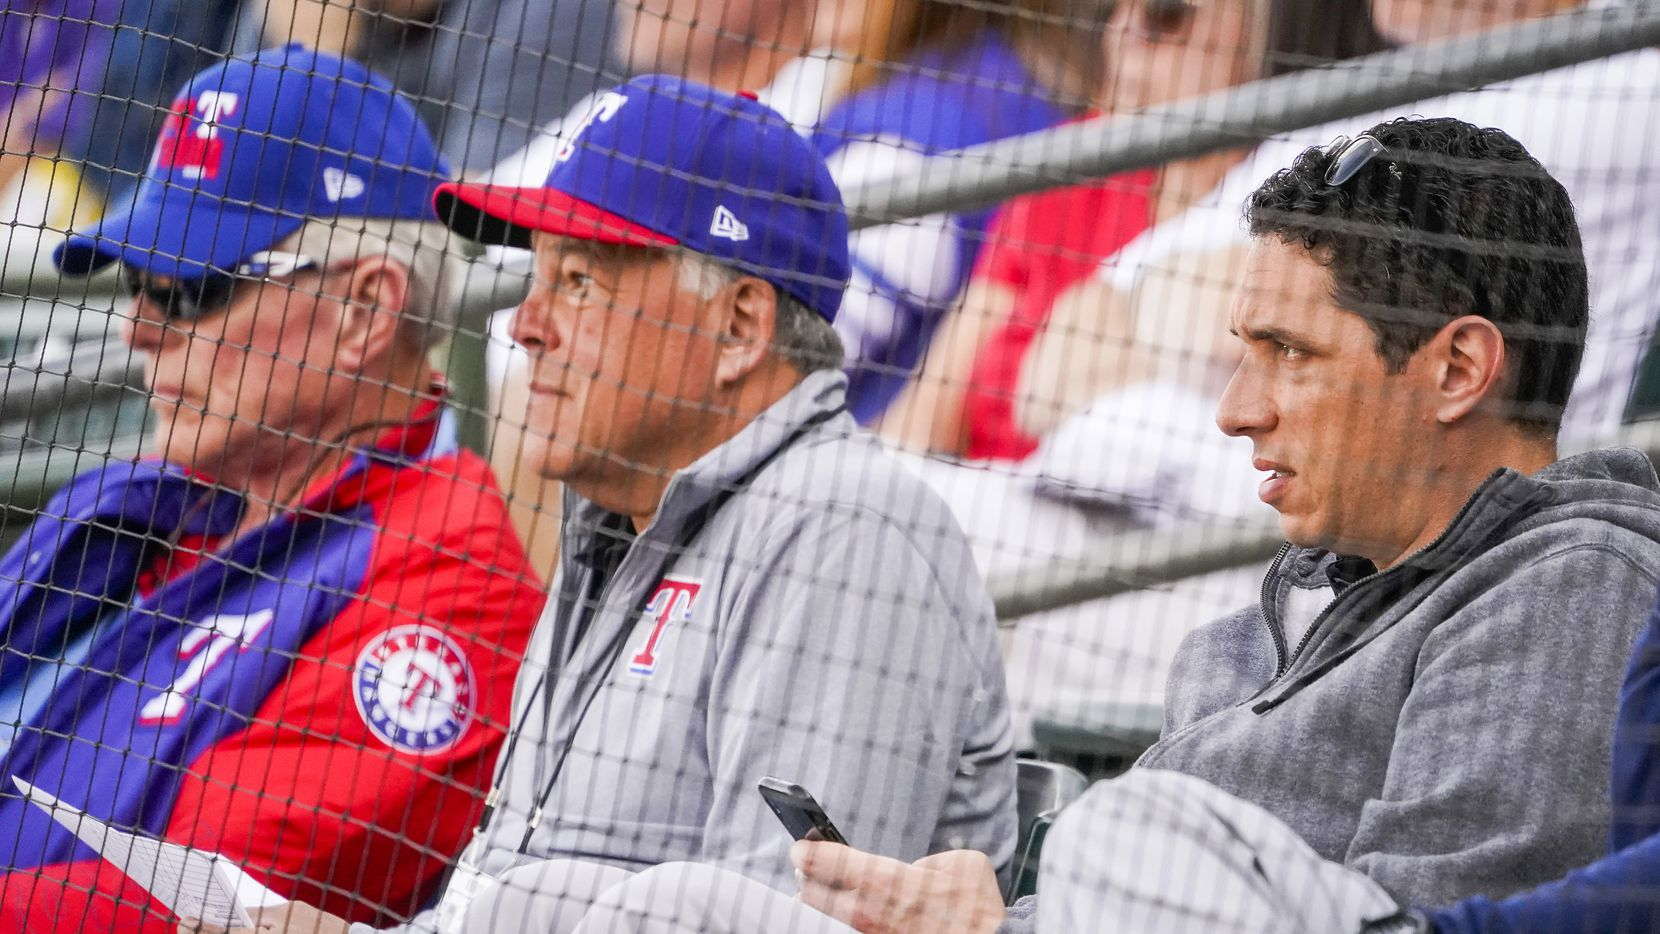 Texas Rangers general manager Jon Daniels (right) watches with co-chairman and managing partner Ray C. Davis (left) and chairman, ownership committee and chief operating office Neil Leibman (center) during the third inning of a spring training game against the Chicago Cubs at Surprise Stadium on Thursday, Feb. 27, 2020, in Surprise, Ariz.